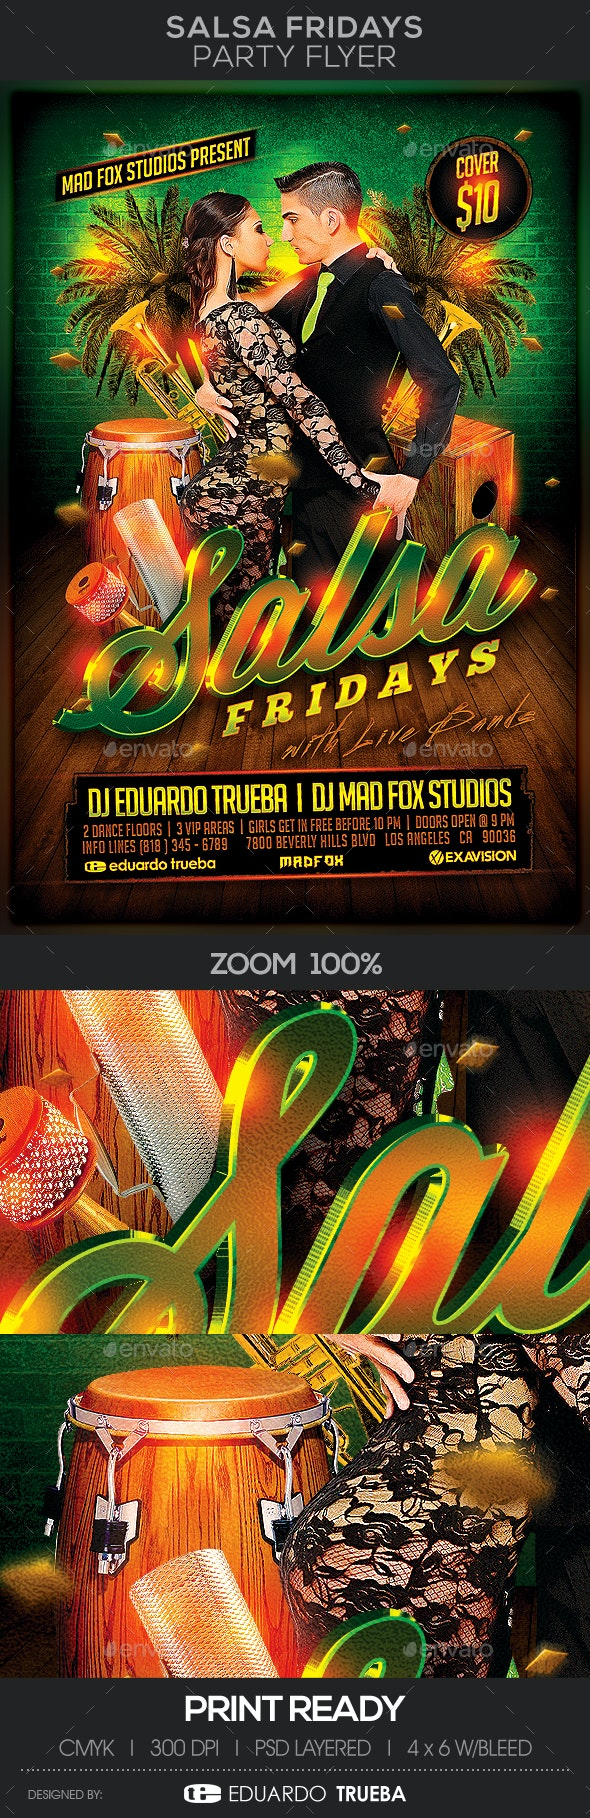 Salsa Fridays Party Flyer - Clubs & Parties Events